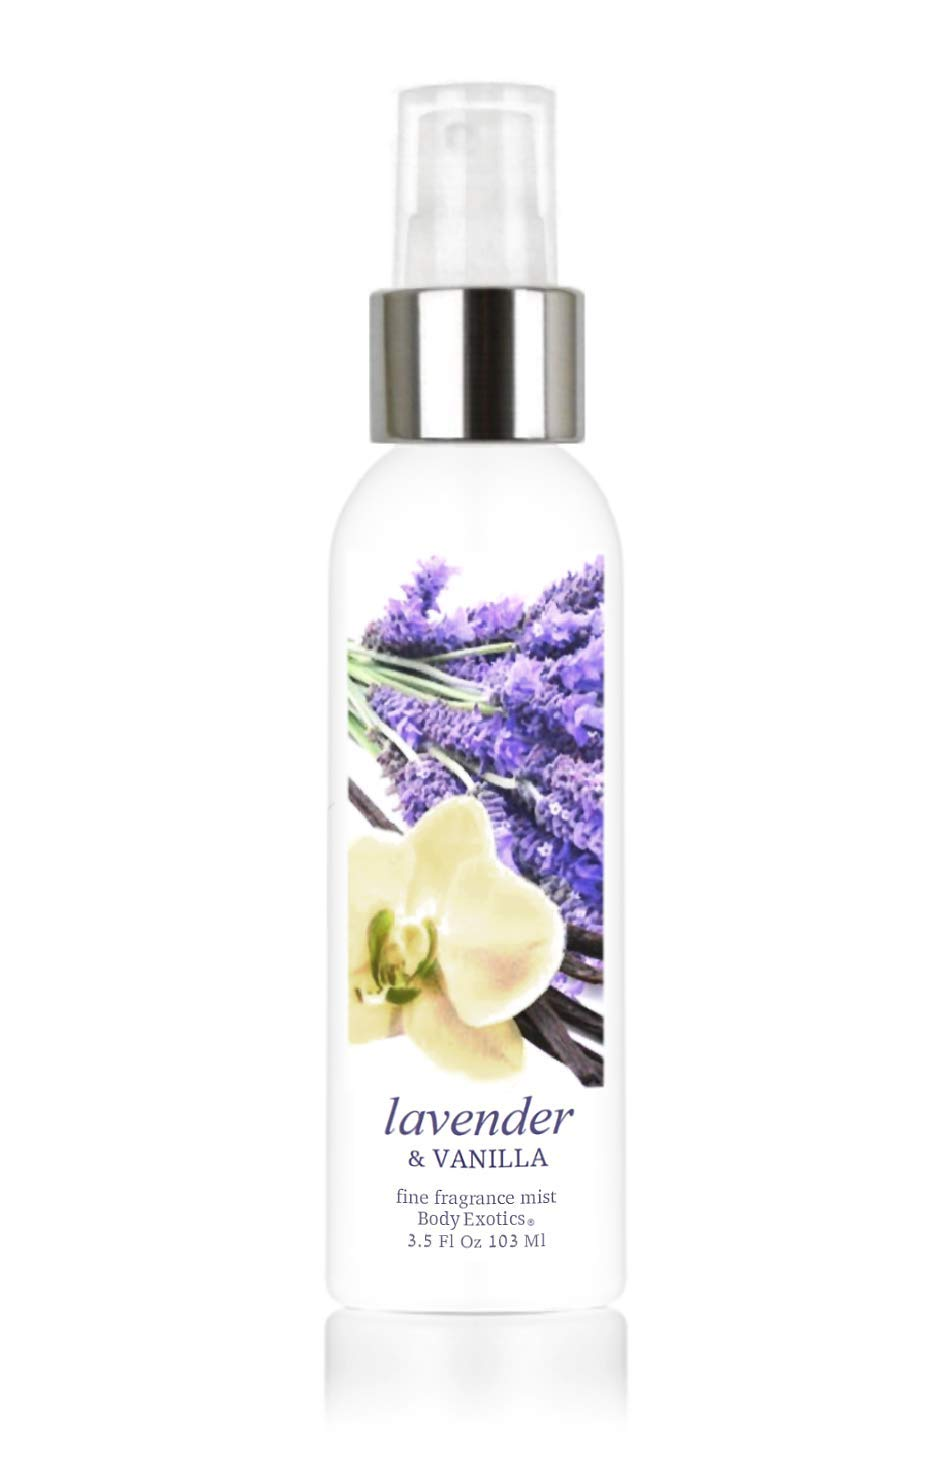 "Lavender & Vanilla Perfume Voted""Simply Heavenly"" Fine Fragrance Cologne Mist by Body Exotics 3.5 Fl Oz 103 Ml ~ a Lush Blend of French Lavender and Creamy Vanilla"